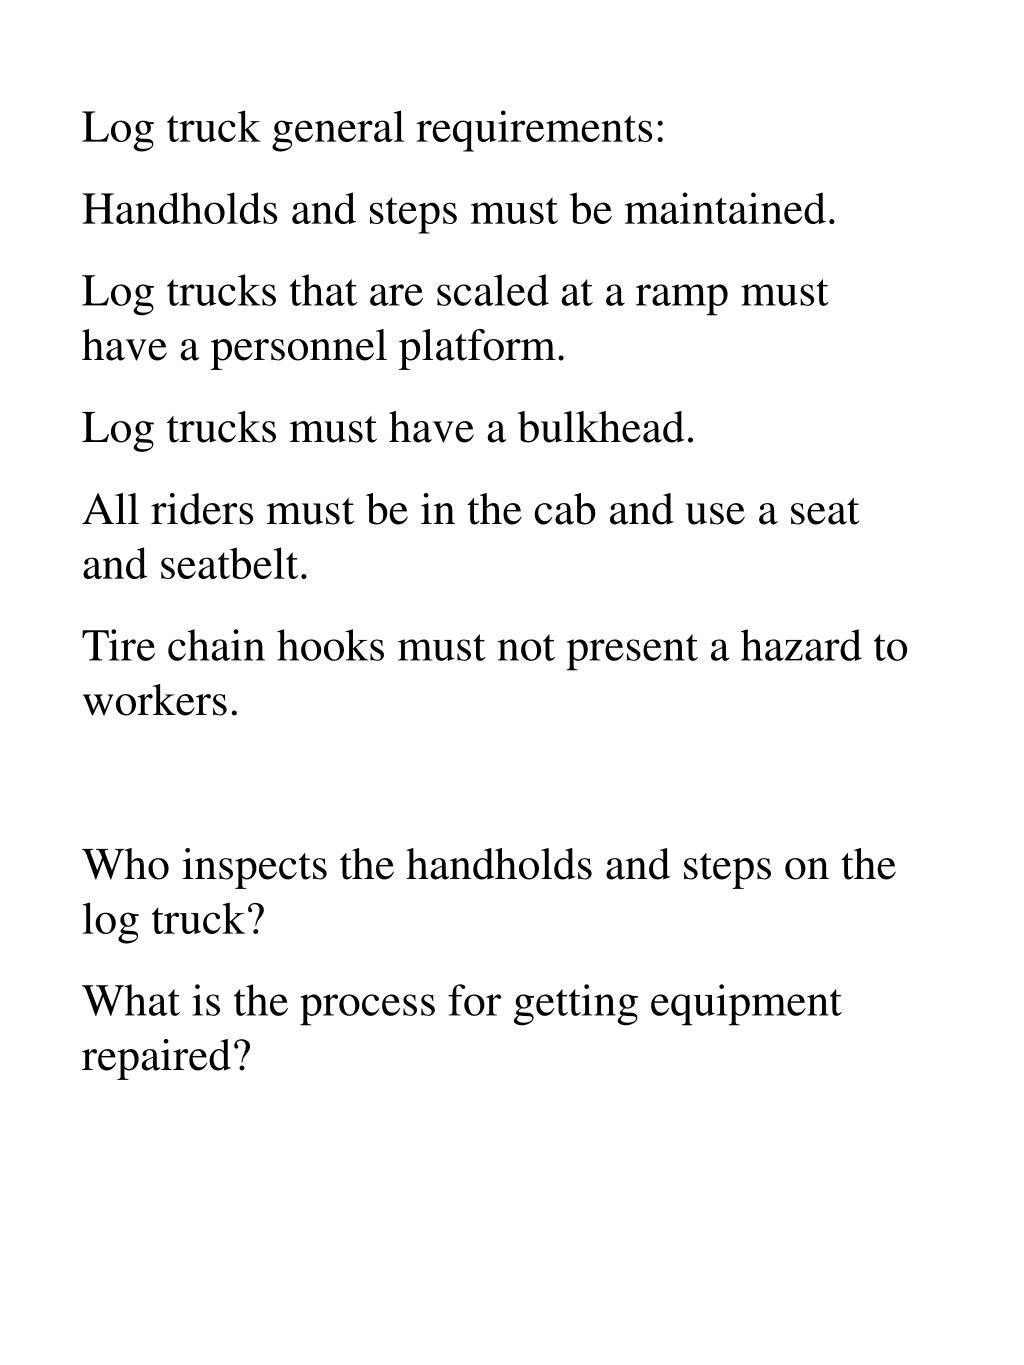 Log truck general requirements: